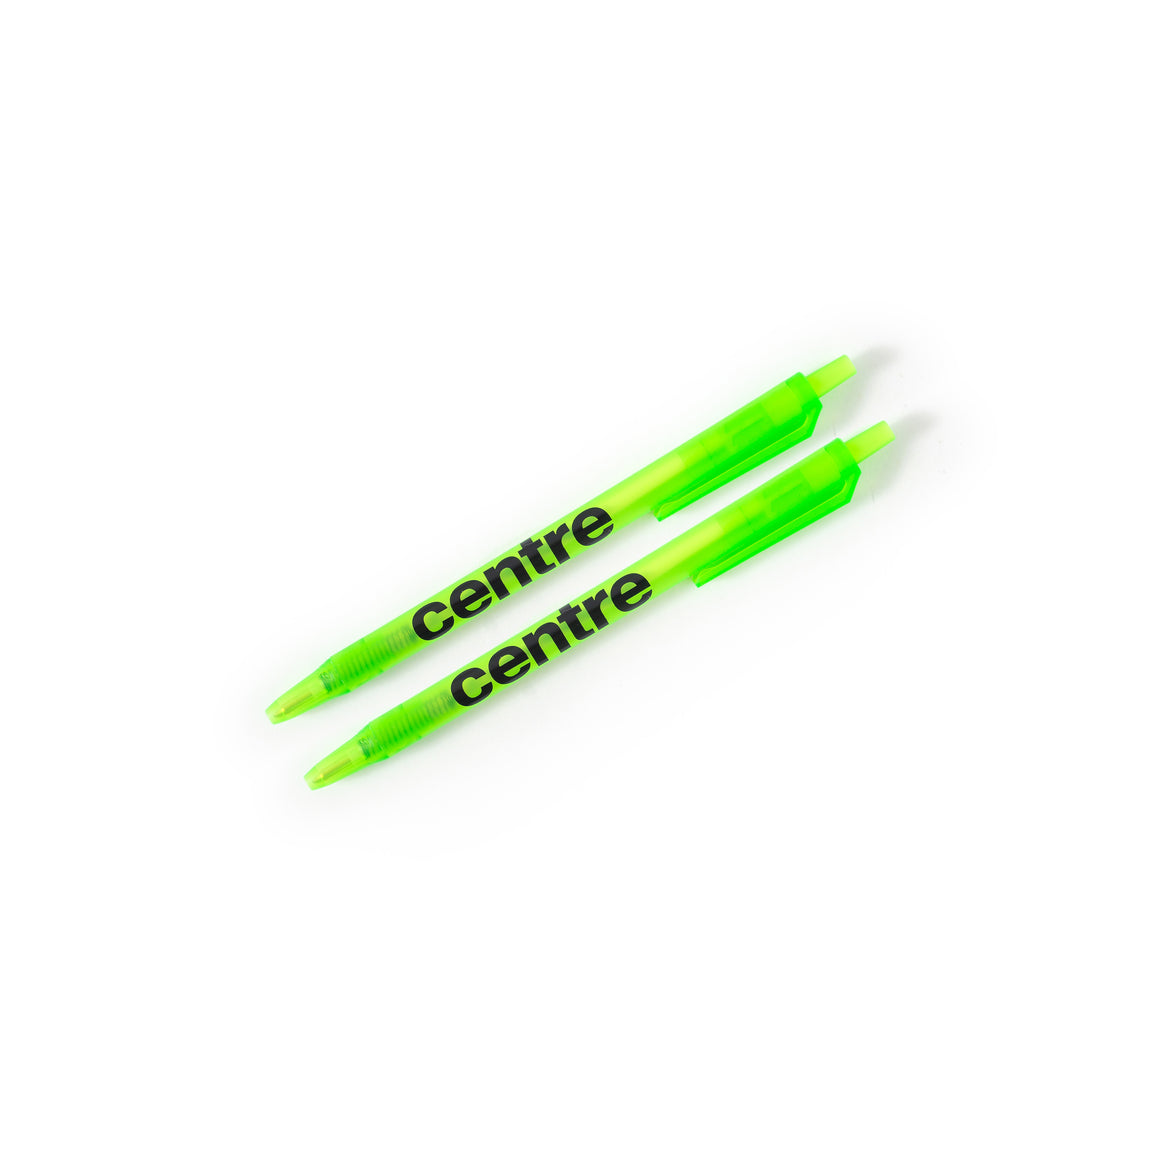 Centre Click Pen 2-Pack (Hyper Green) - Centre Click Pen 2-Pack (Hyper Green) -